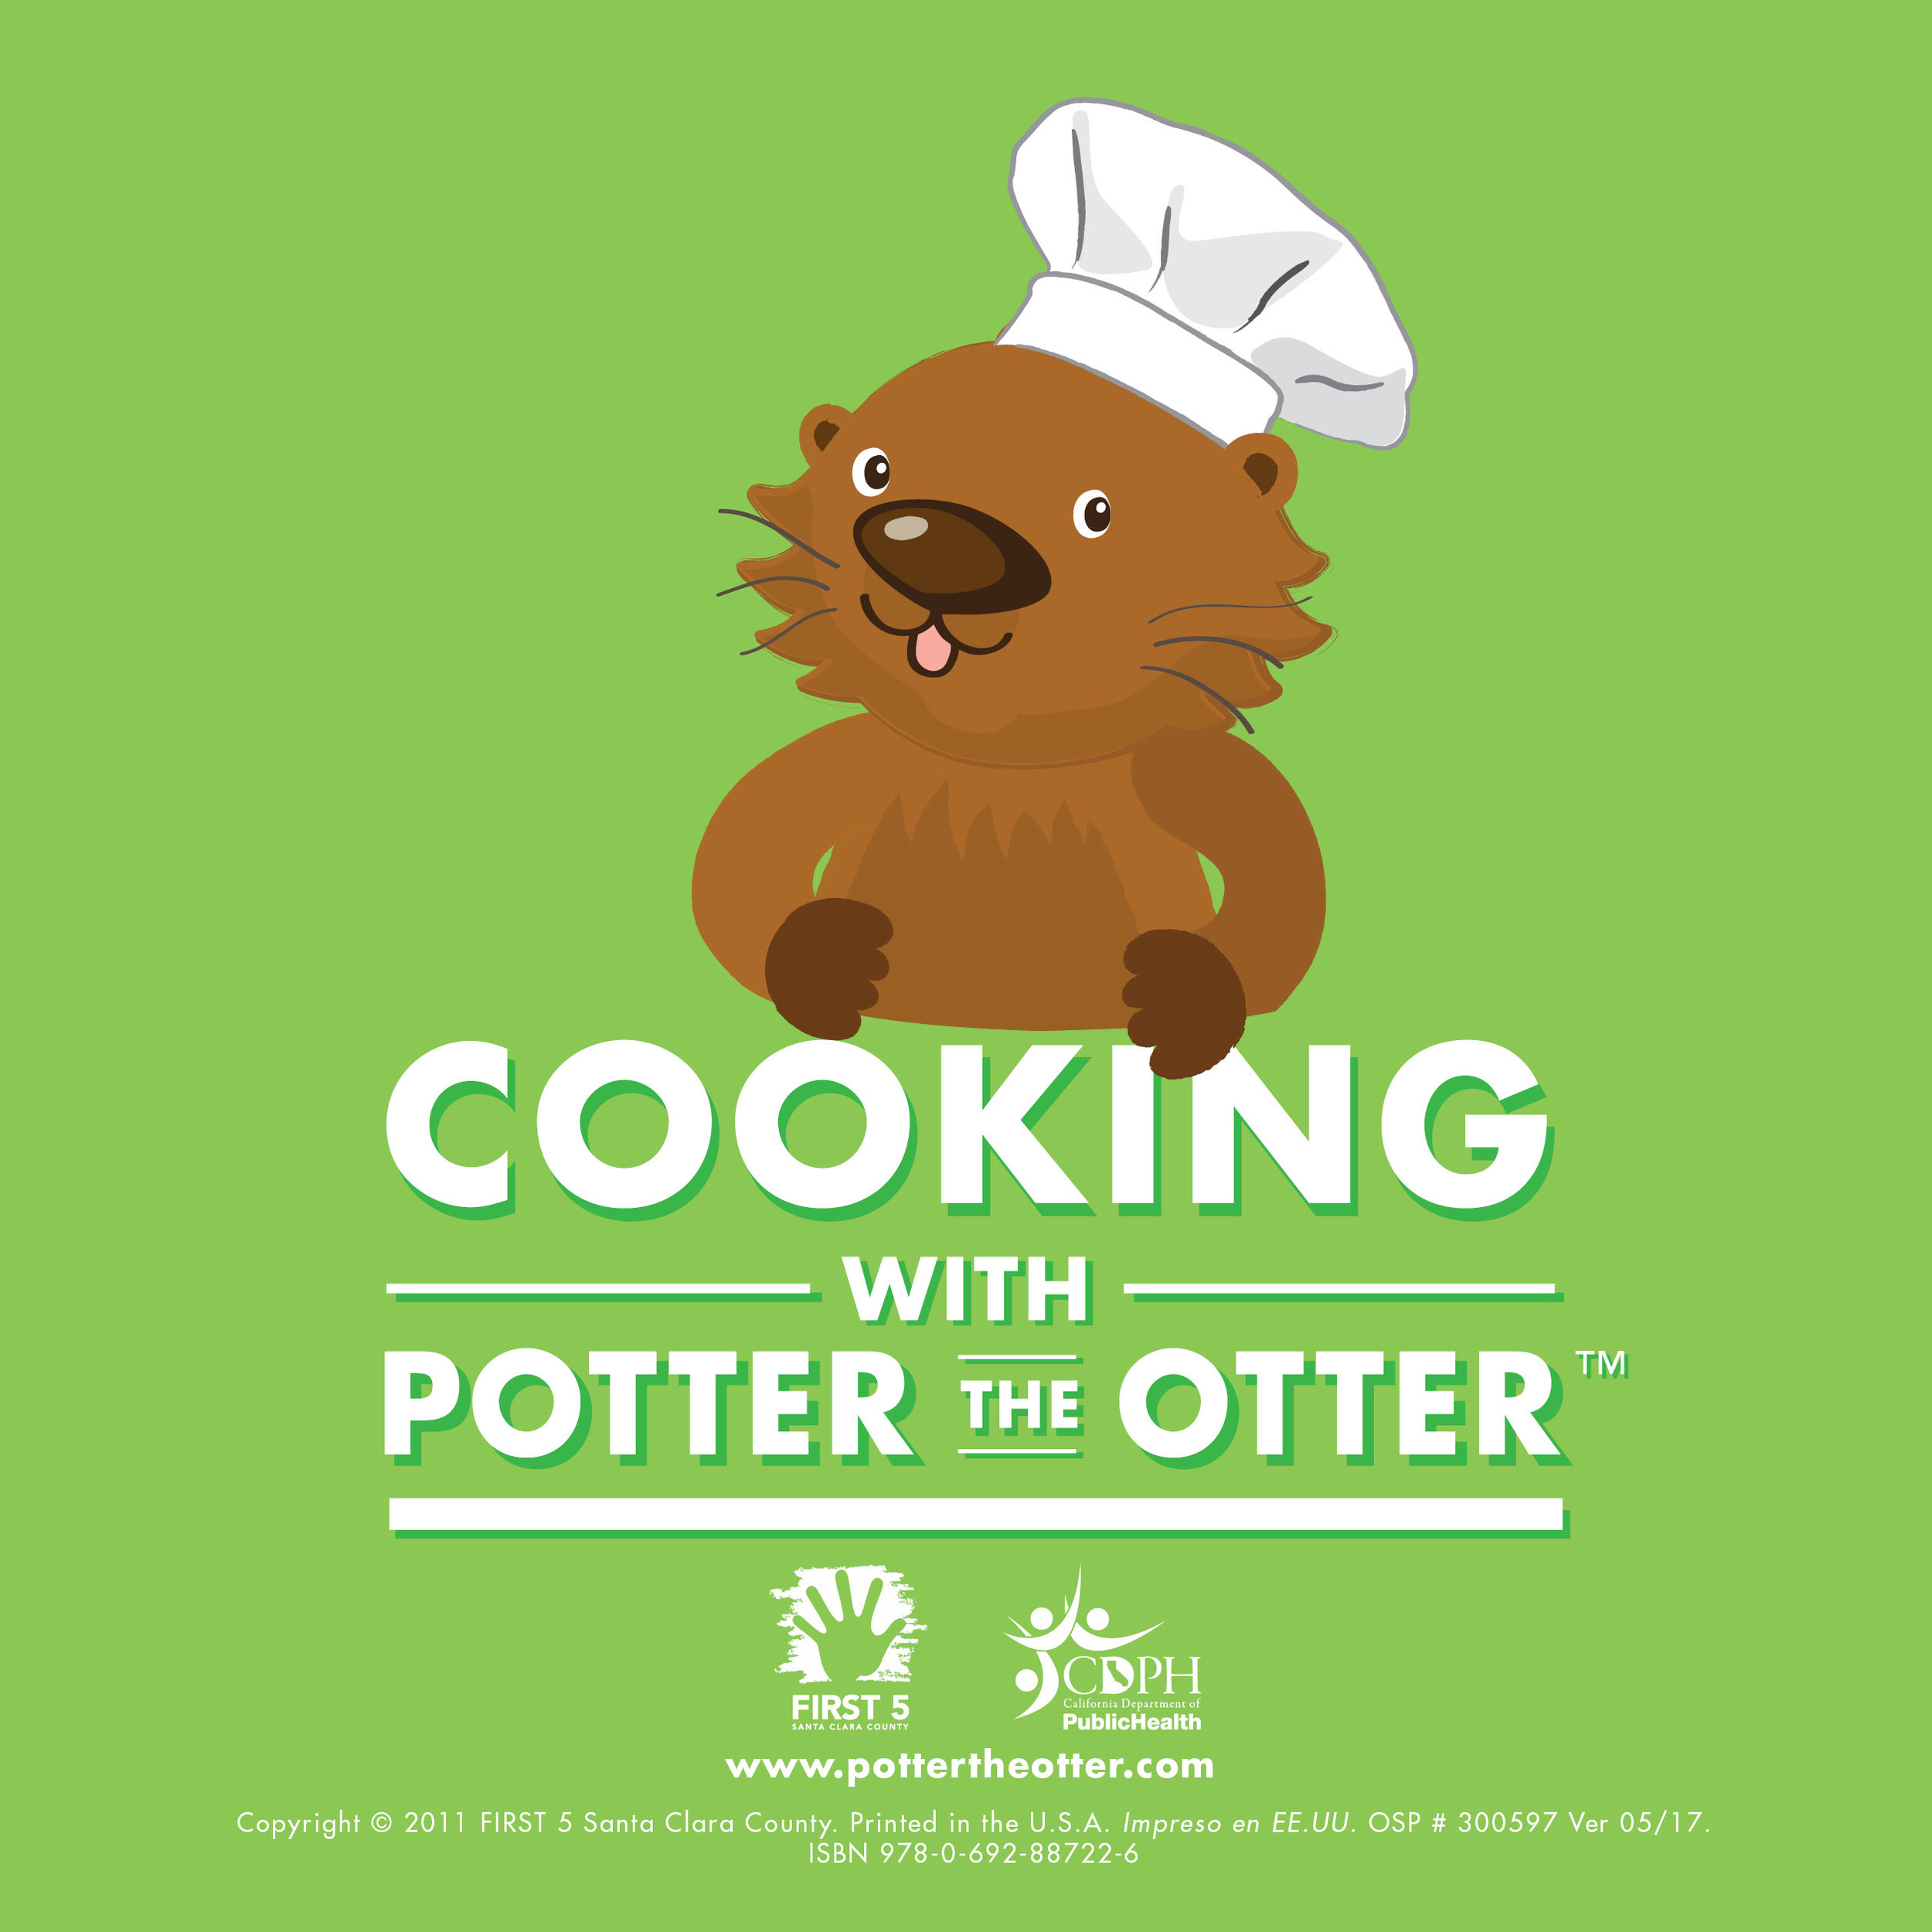 COOKING WITH POTTER THE OTTER   Healthy recipes and cooking tips from Potter.